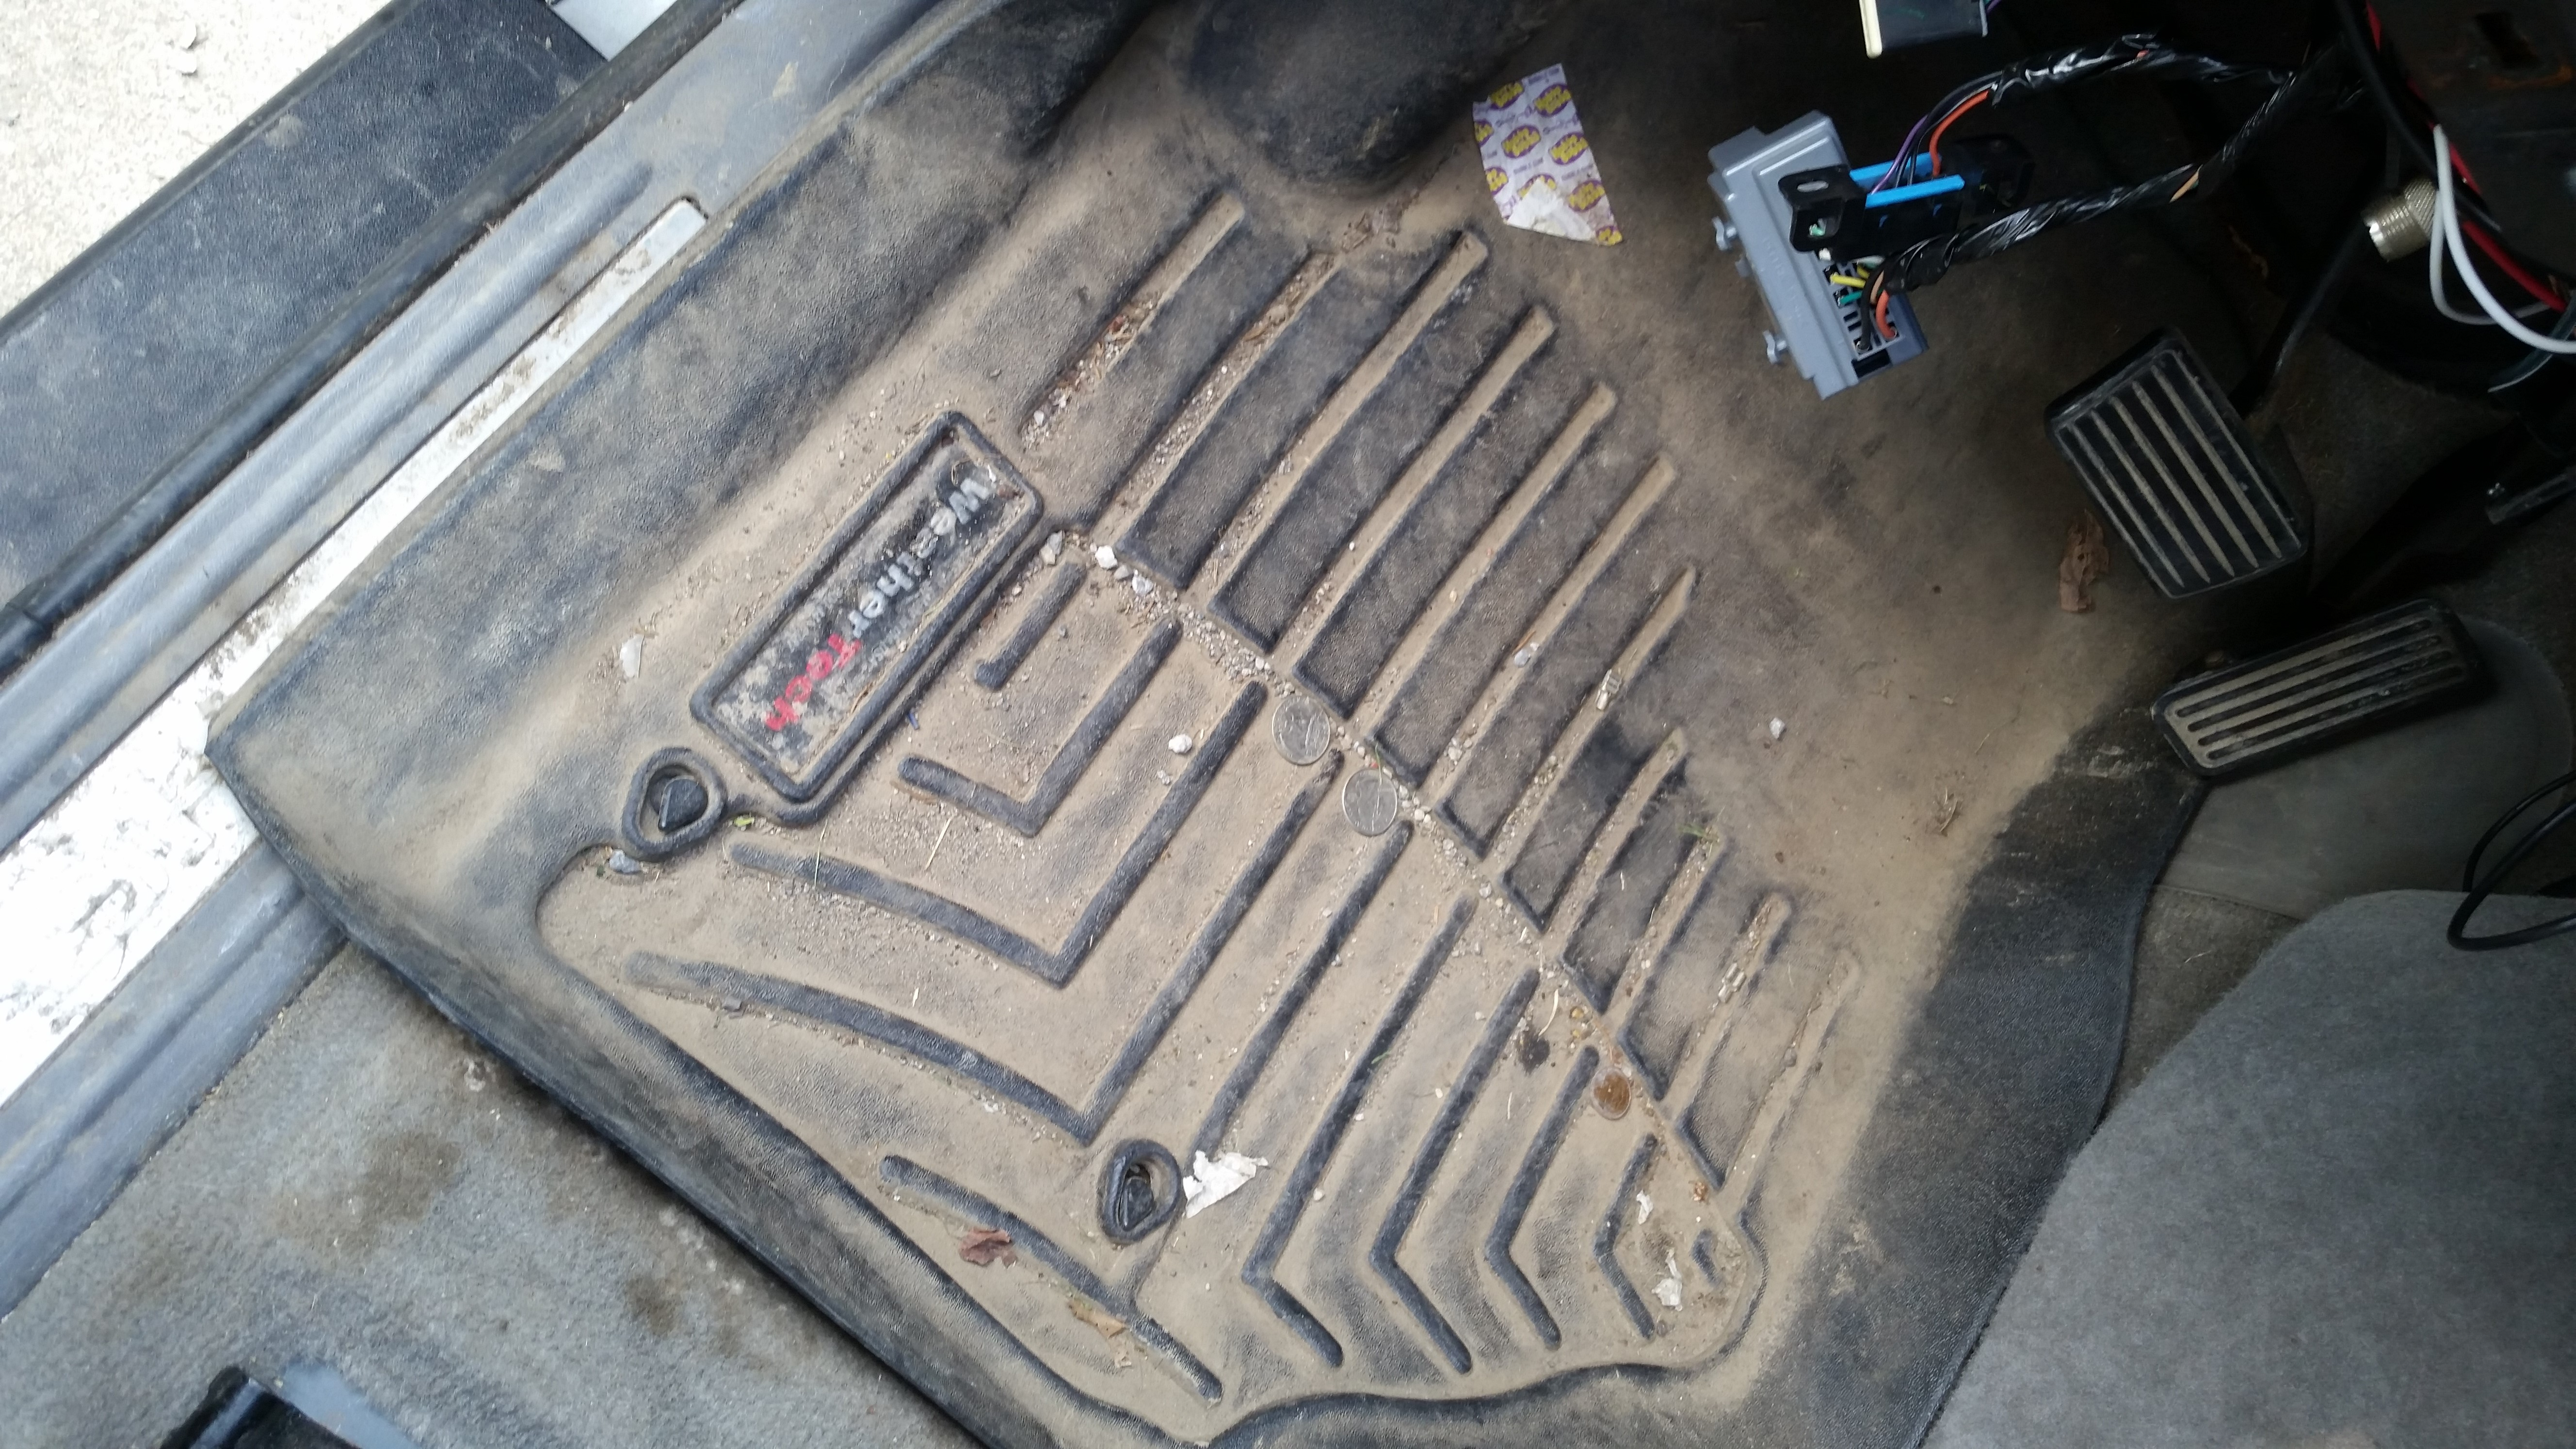 Floor mats cost - As You Can See In These Pictures I Have Used These For A While Now The Have Lots Of Dirt And Dust And On The Passenger Side Of The Car